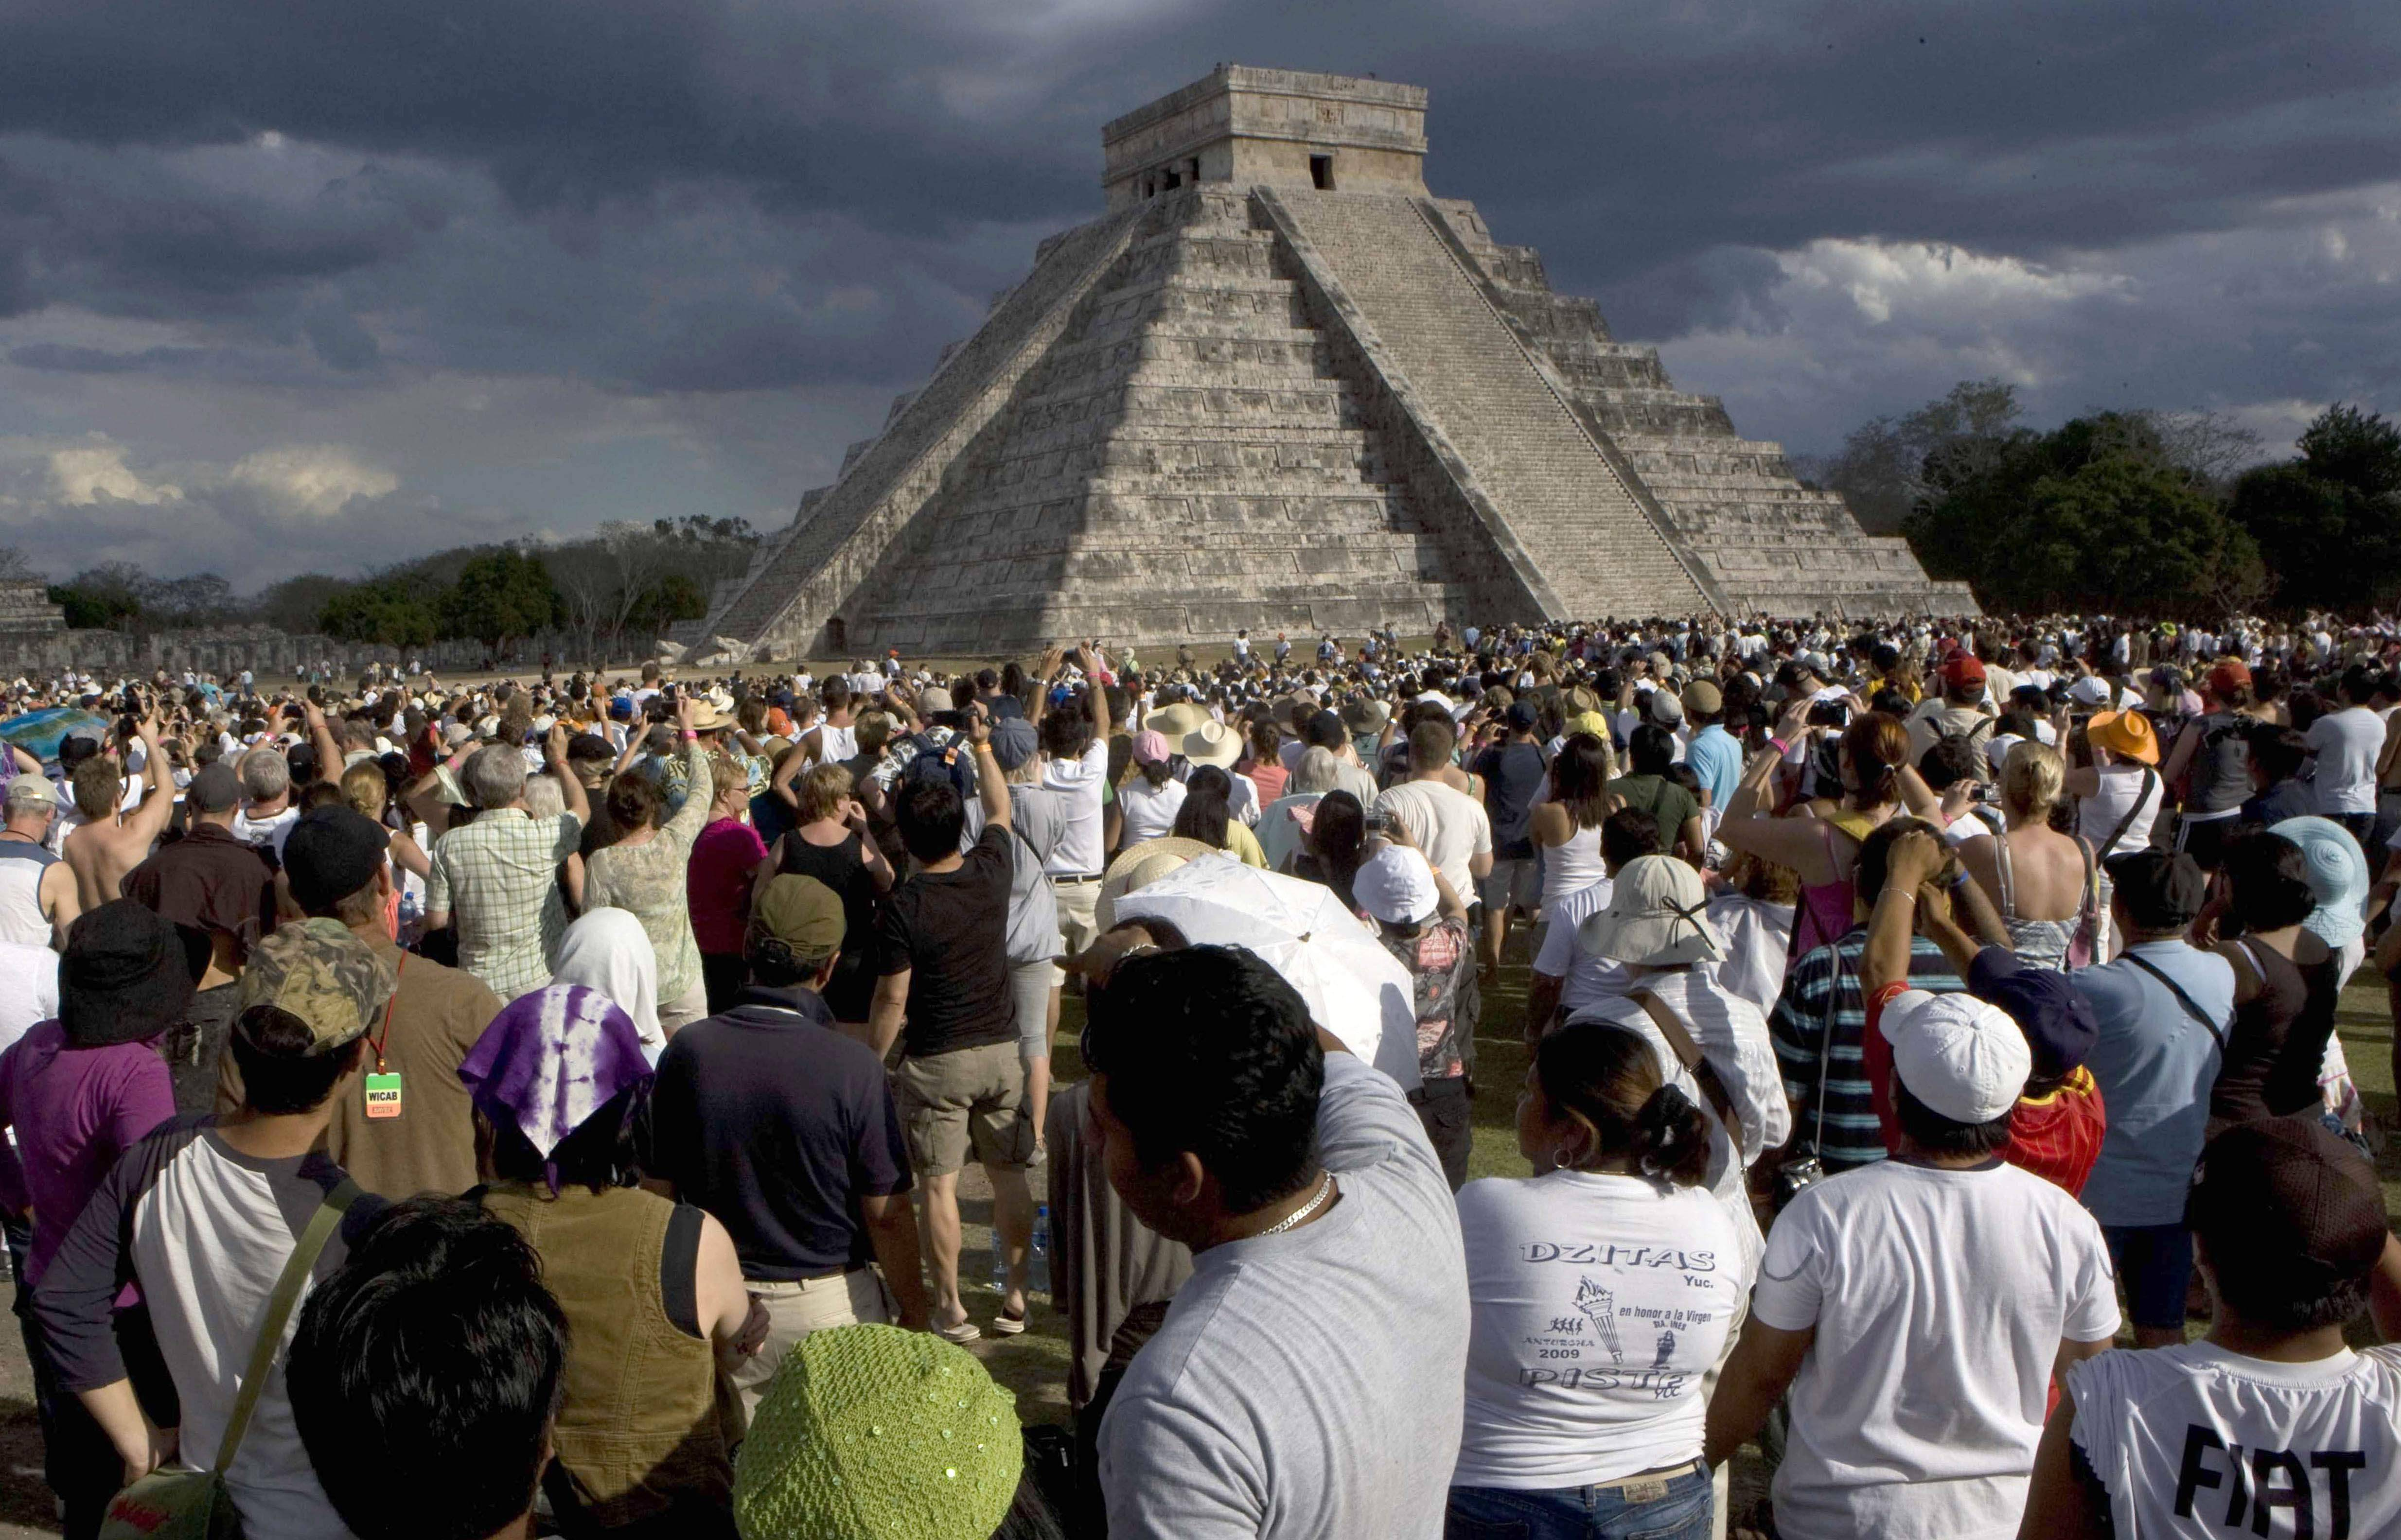 how long did it take to build the mayan pyramids